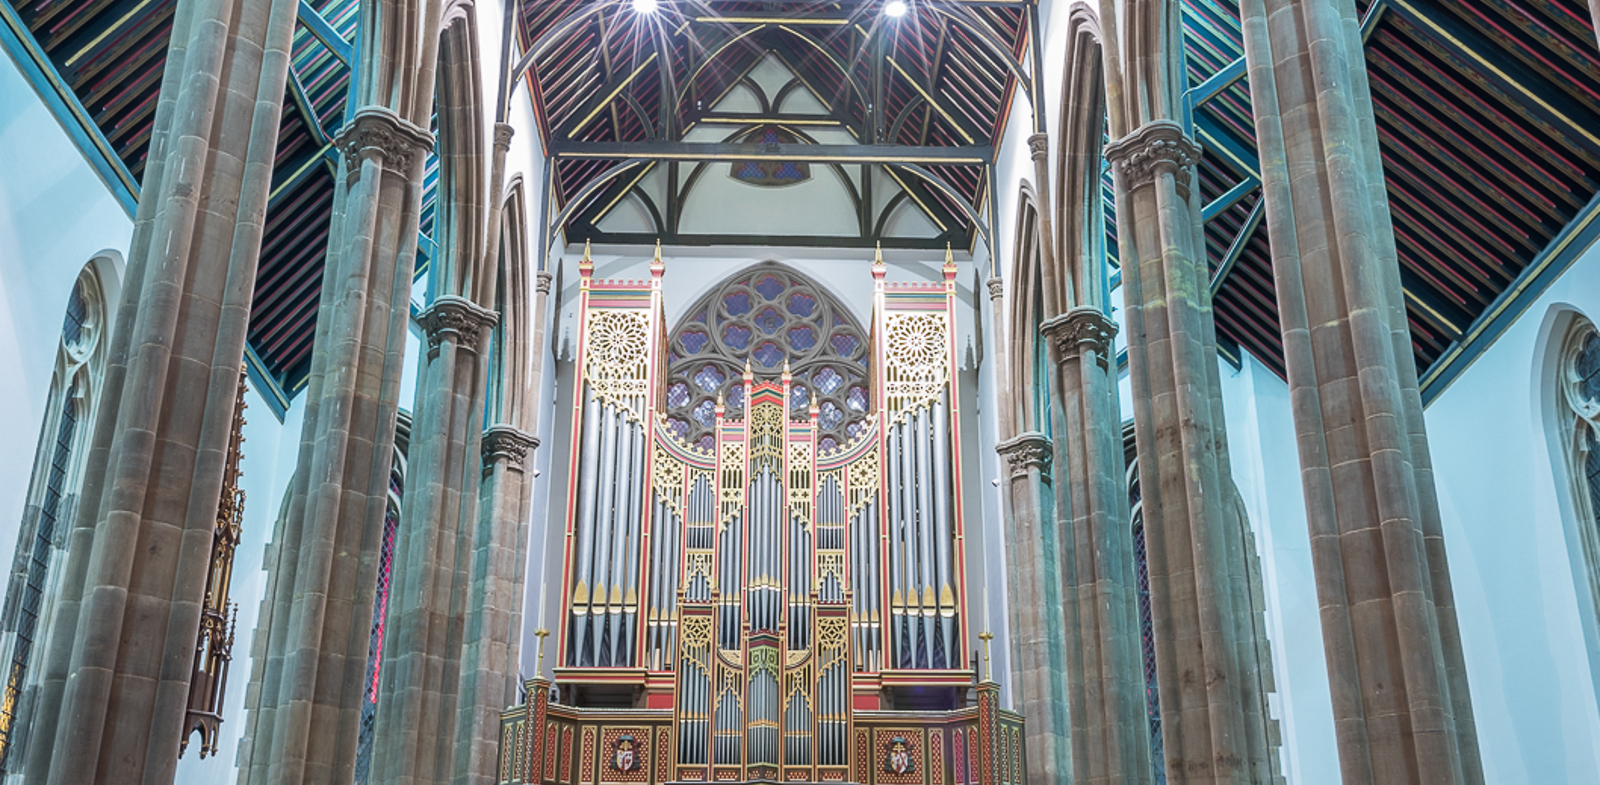 Fundraising Appeal launched for Cathedral Organ